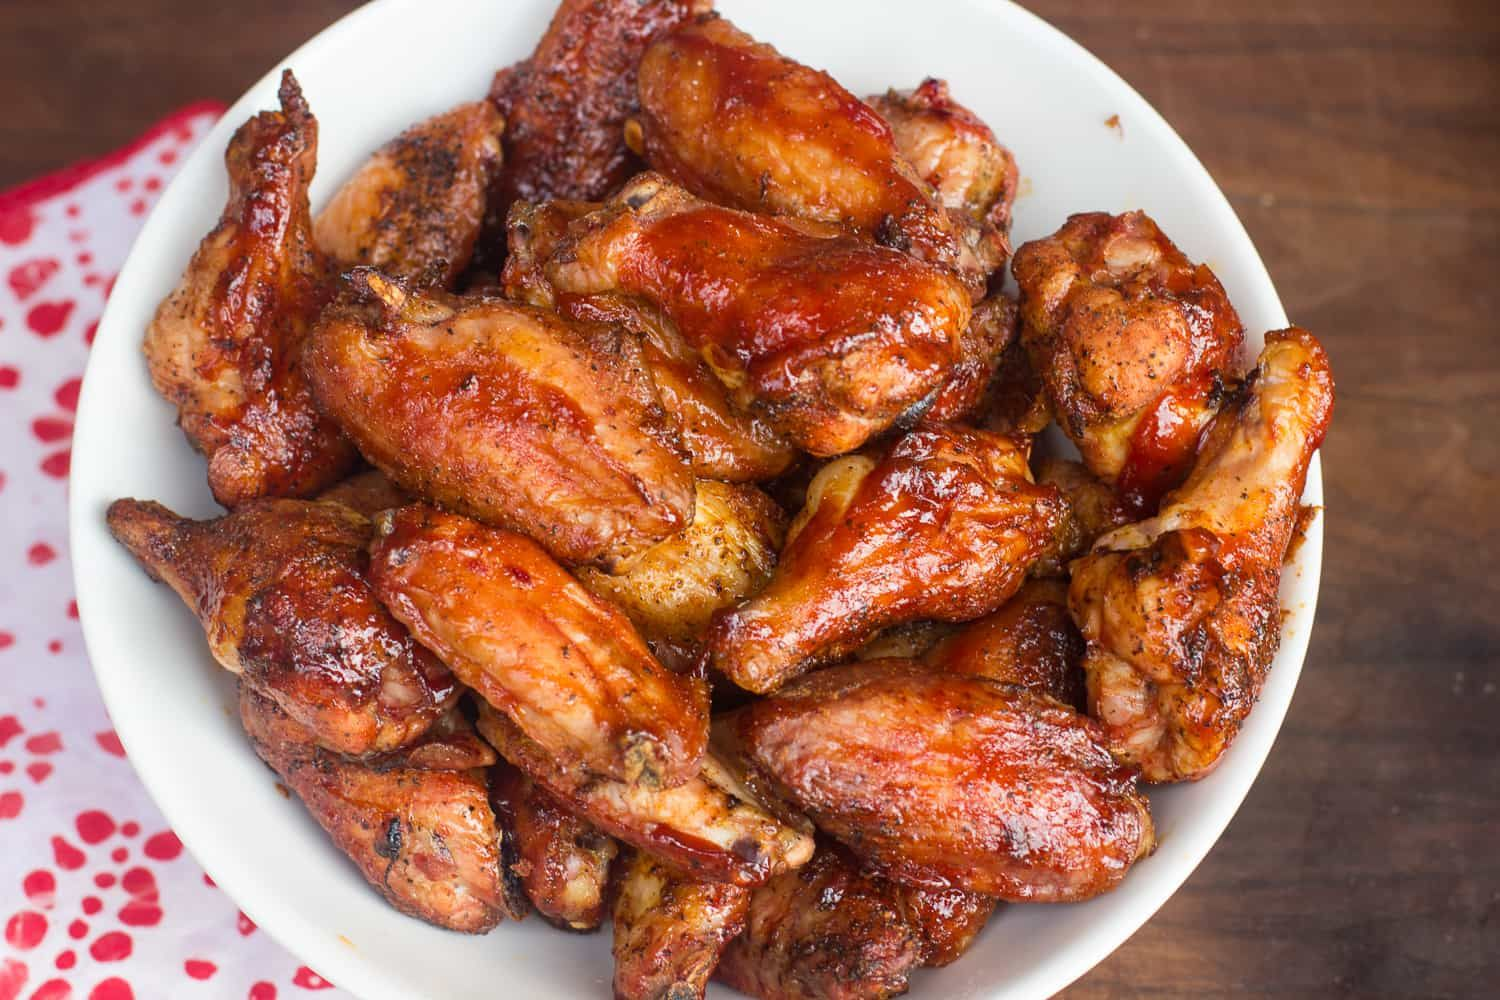 How Long To Smoke Chicken Wings Using Electric Smoker Pellet Smoker Charcoal Or Other Wood Smoker Bbq Chicken Wings Chicken Wing Recipes Smoked Food Recipes